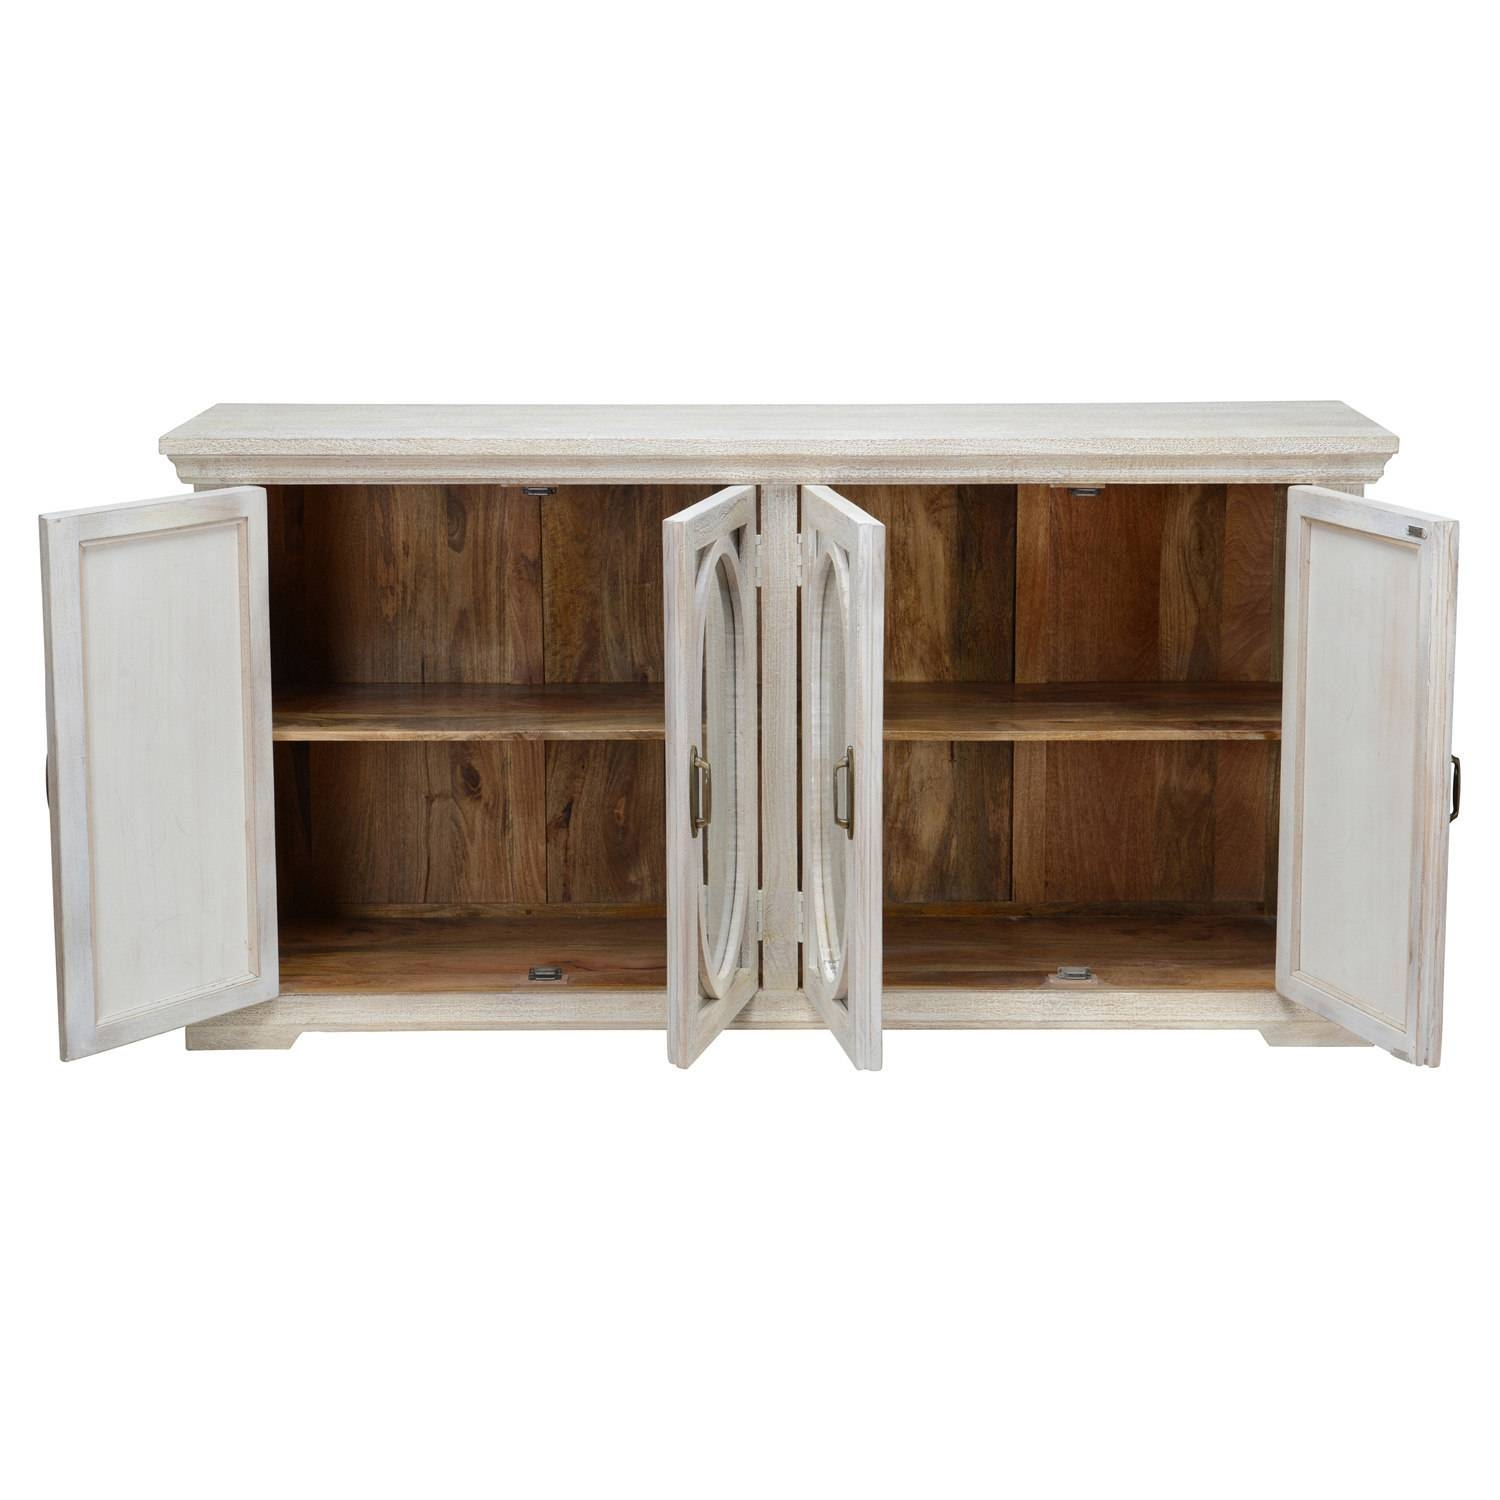 Manchester Wood Mirrored 70-Inch Sideboardkosas Home - Free intended for 70 Inch Sideboards (Image 6 of 15)